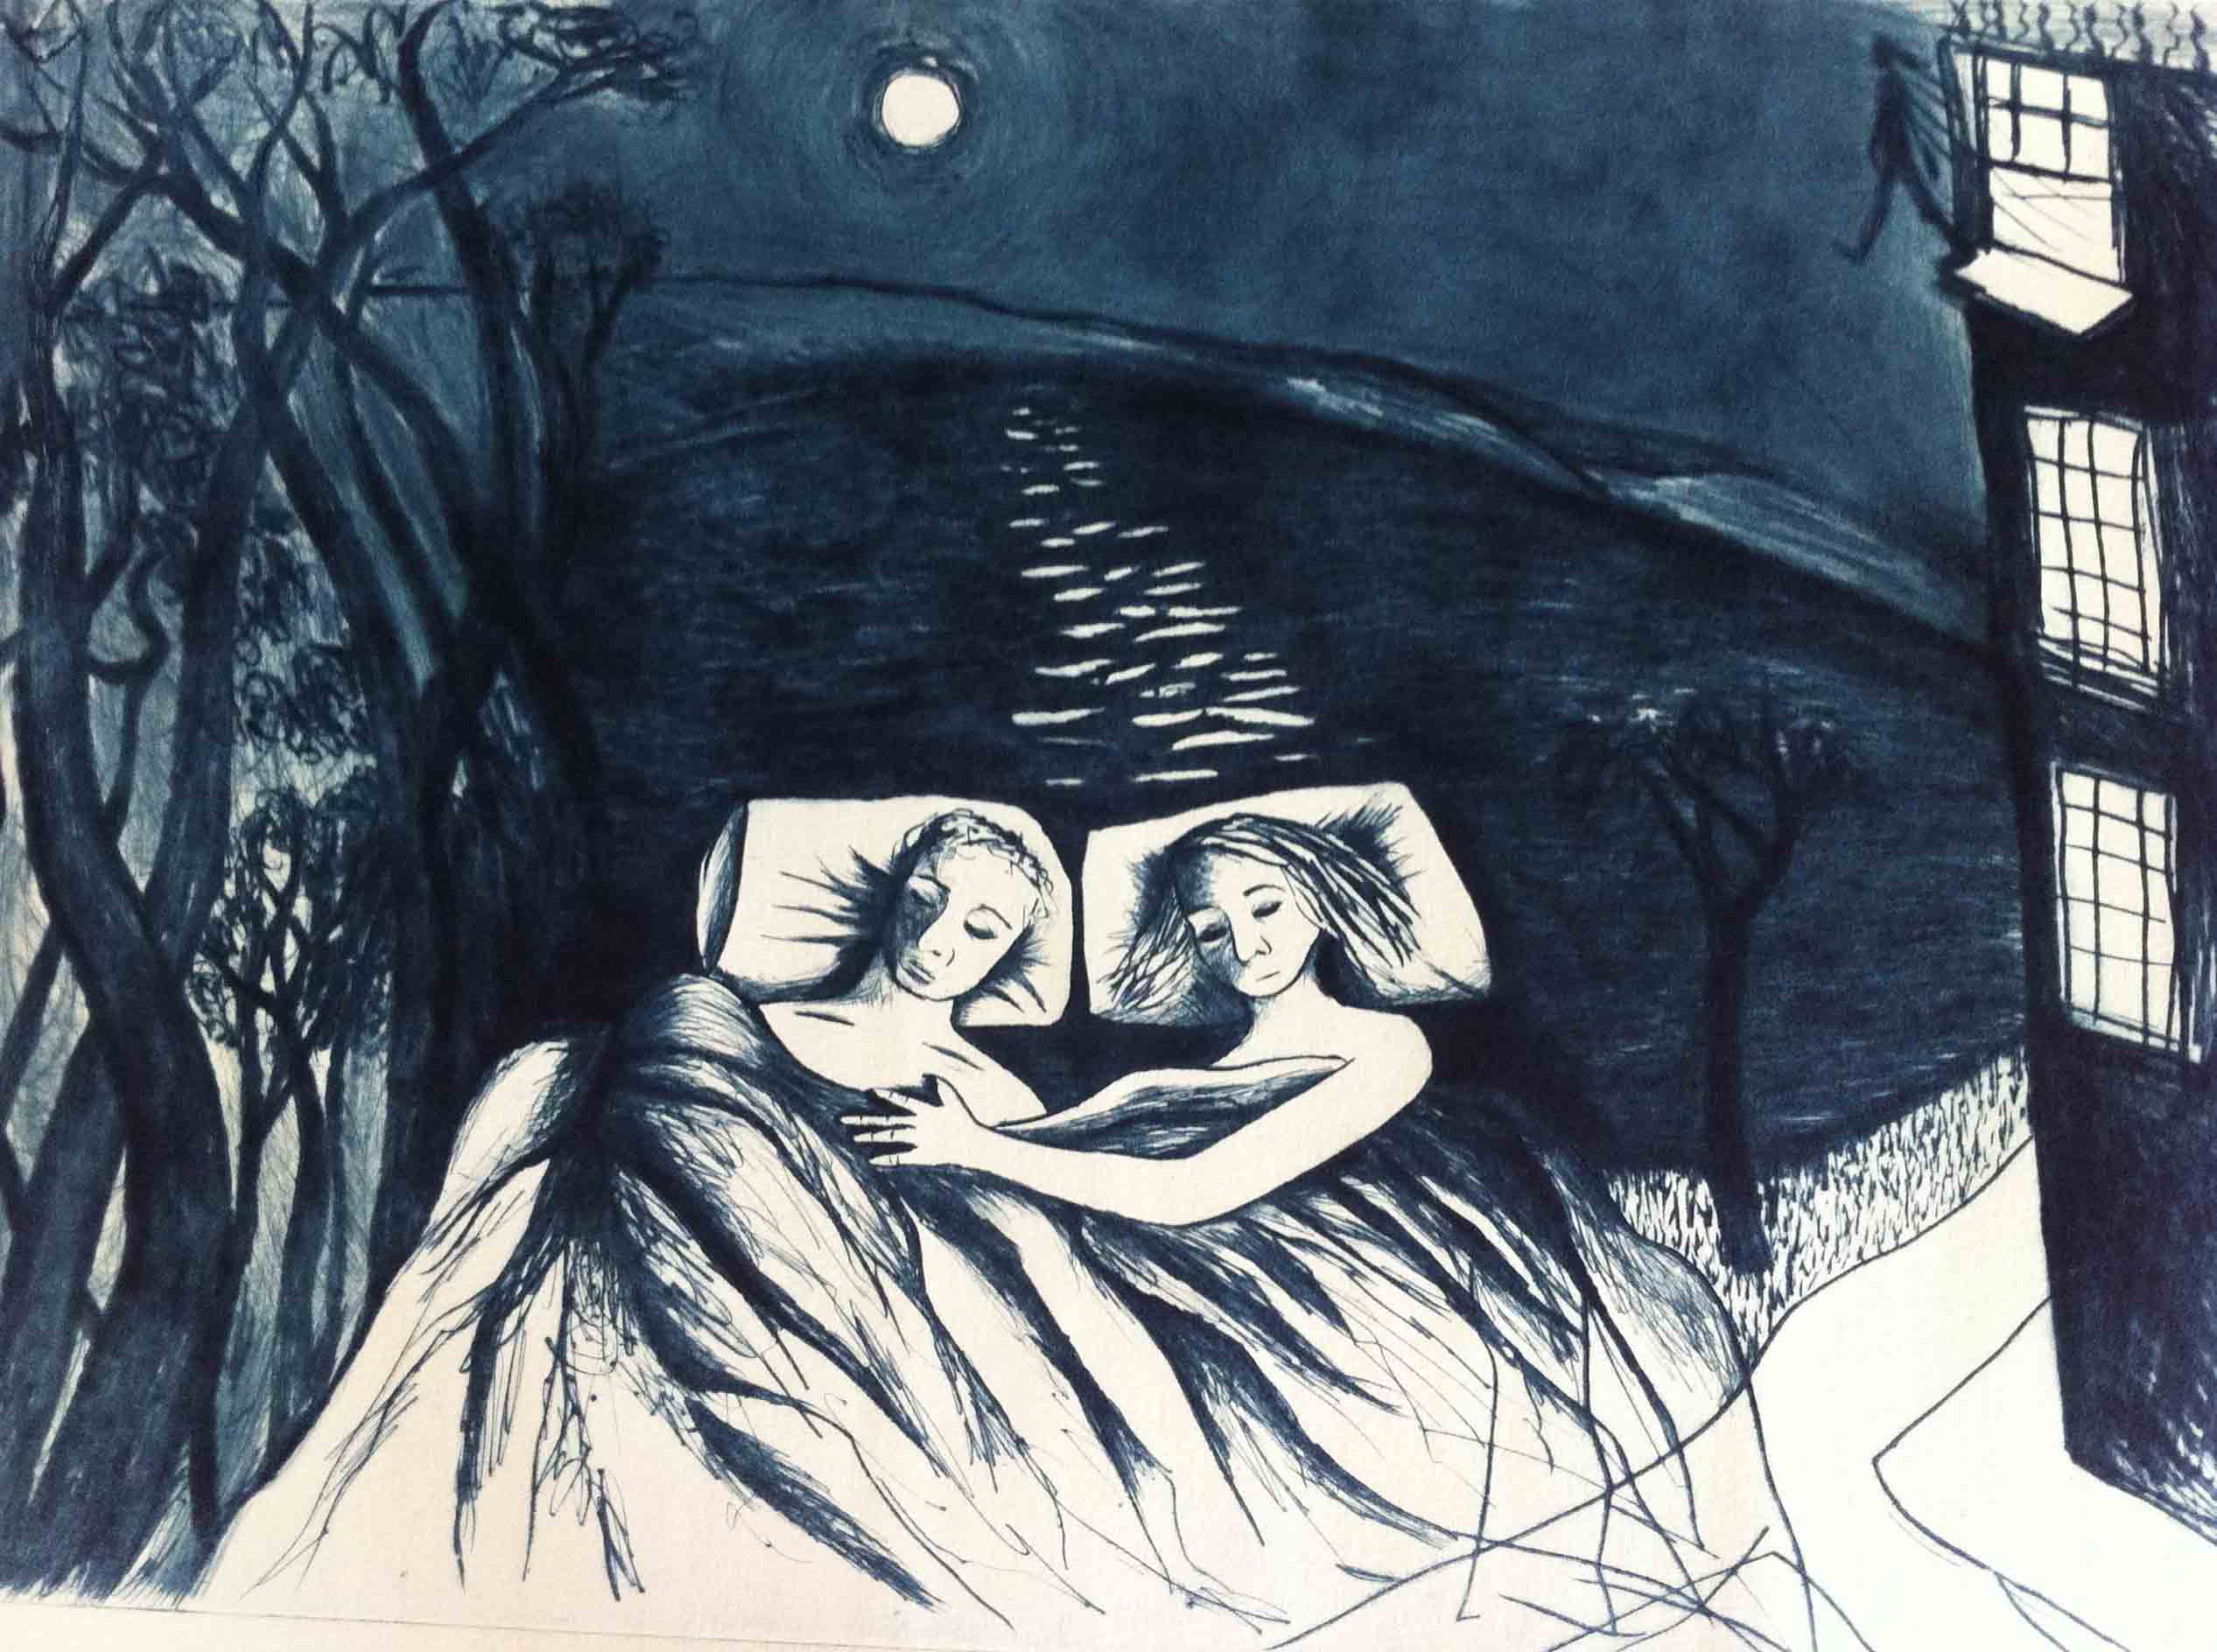 Stepping onto the Air, Drypoint Print by Shana James from the conversations with Ghosts Series 42cm x 30cm $360 unframed